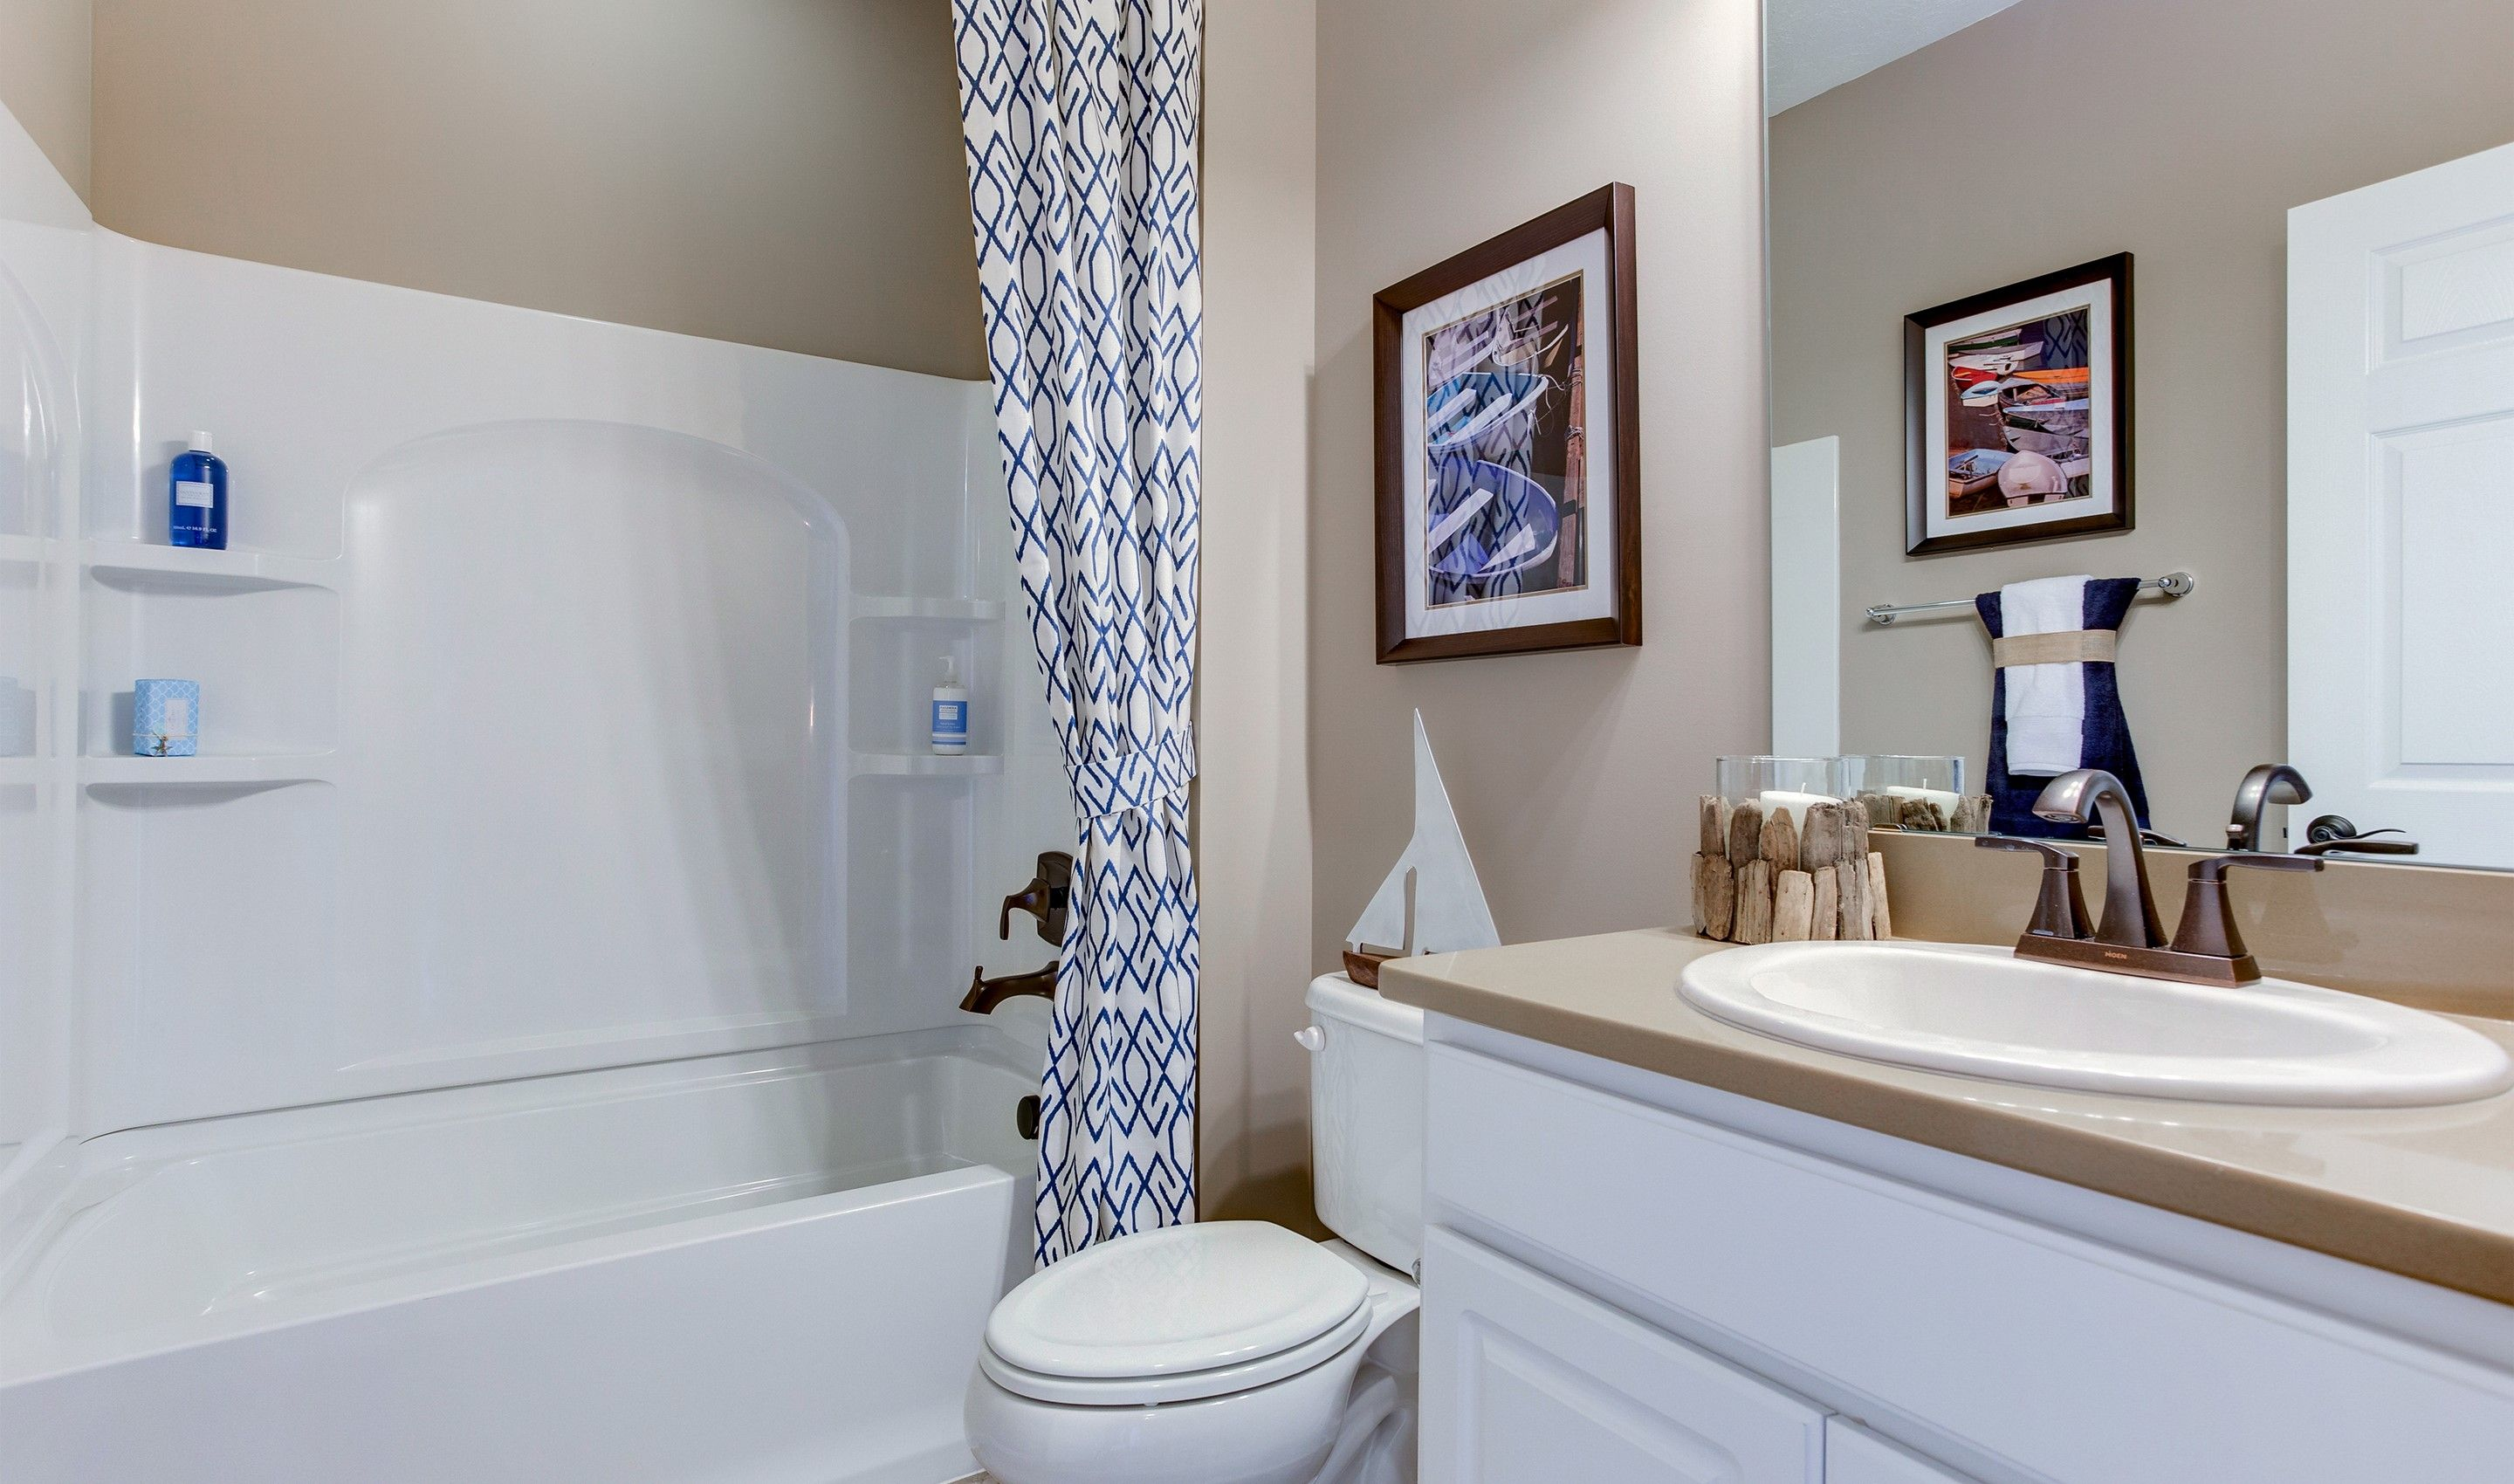 Bathroom featured in the Dorchester Loft By K. Hovnanian's® Four Seasons in Cleveland, OH